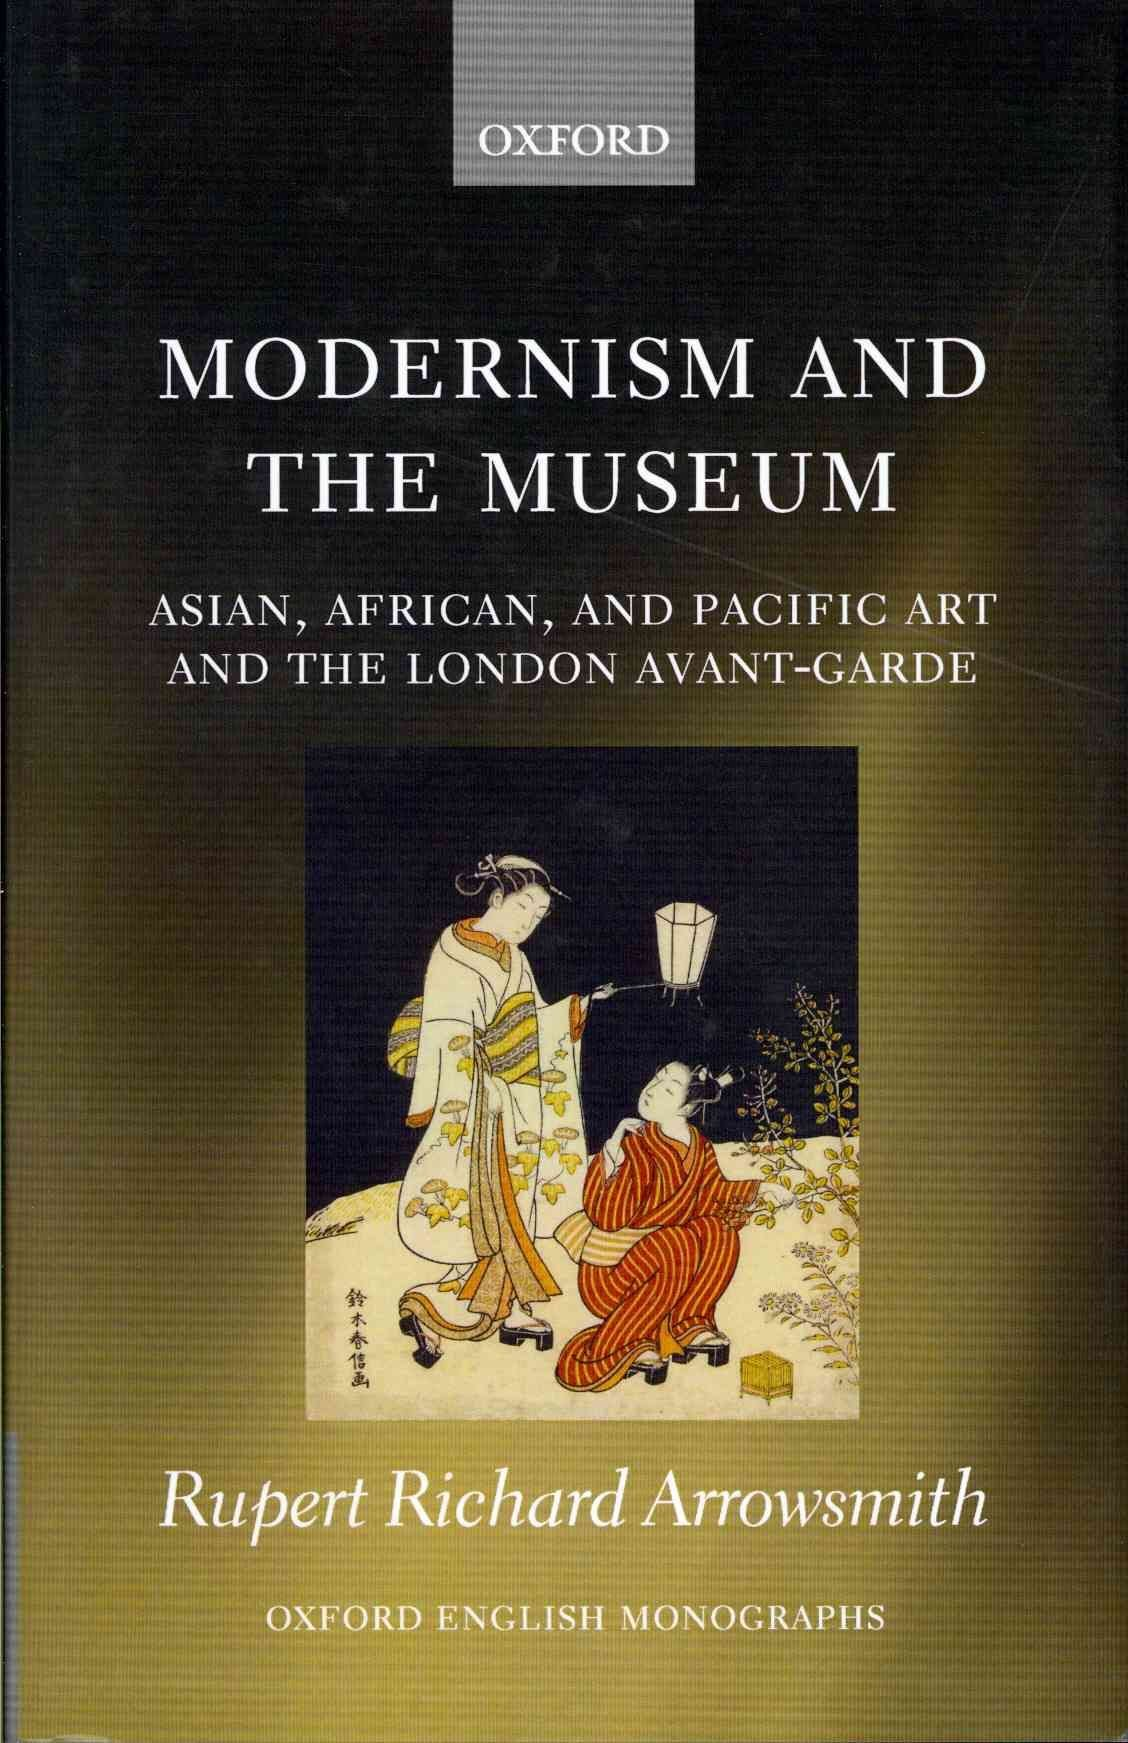 Modernism and the Museum - Rupert Richard Arrowsmith